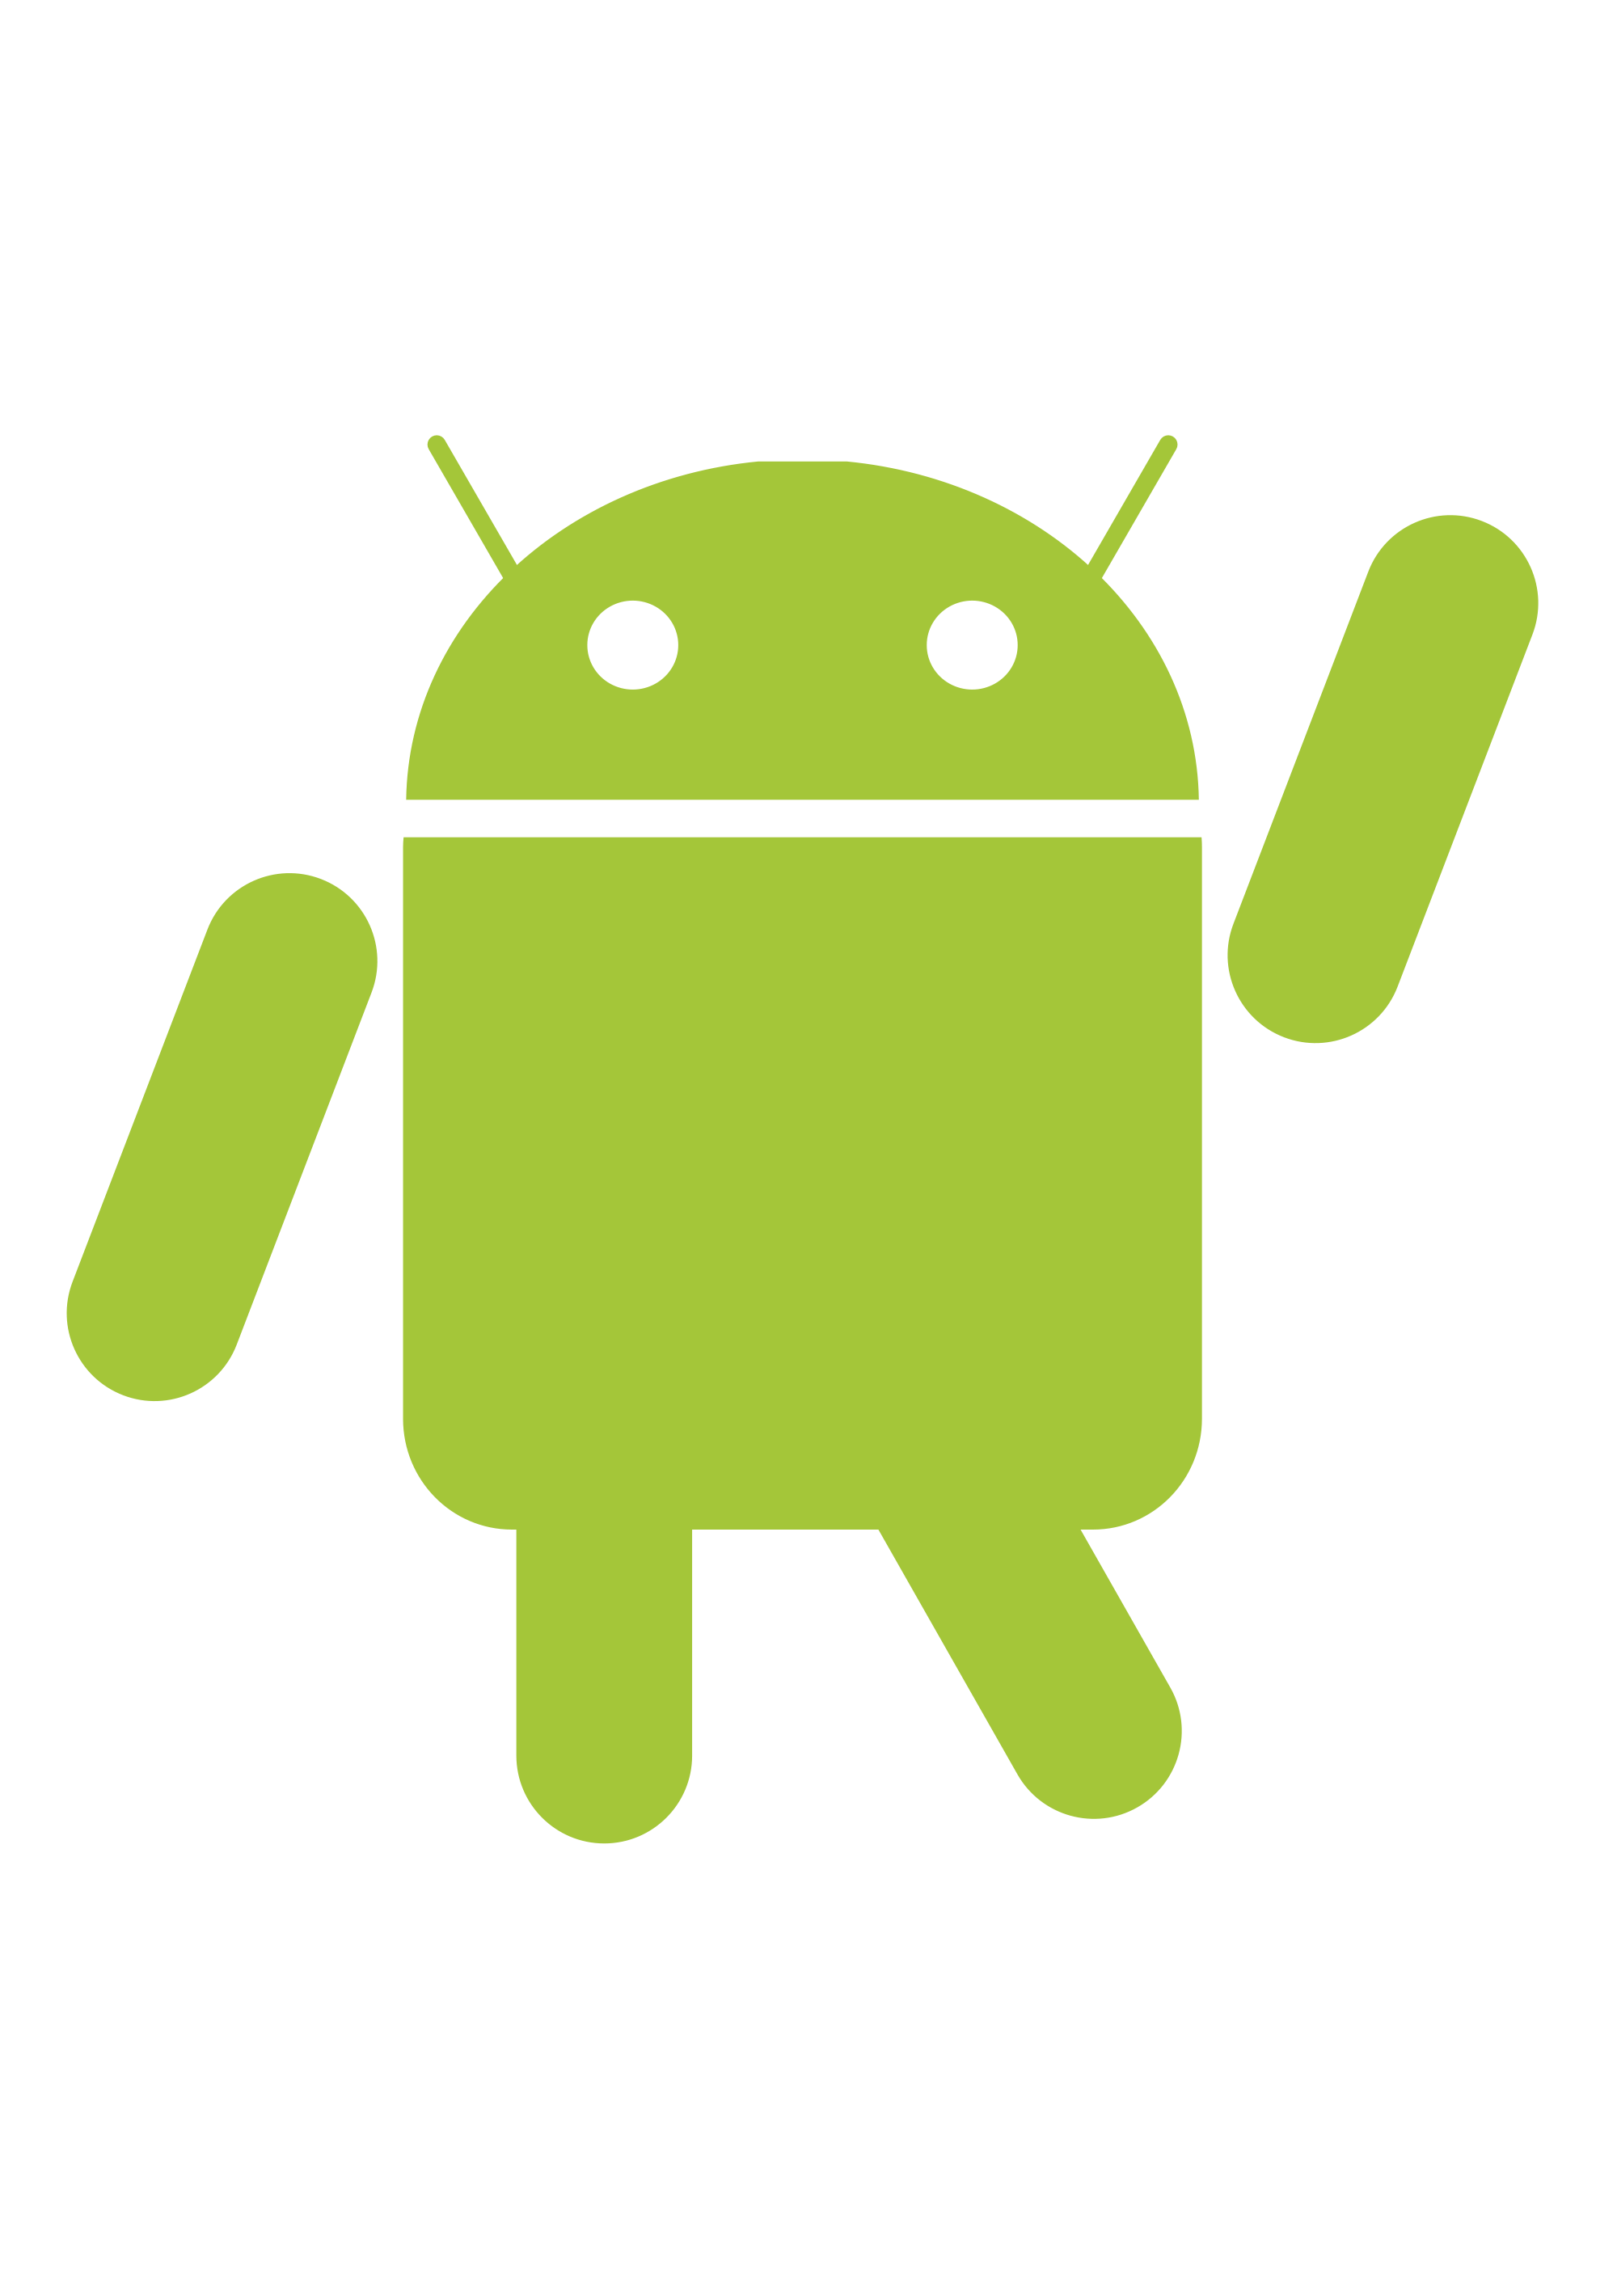 Android images png. File dance svg wikimedia